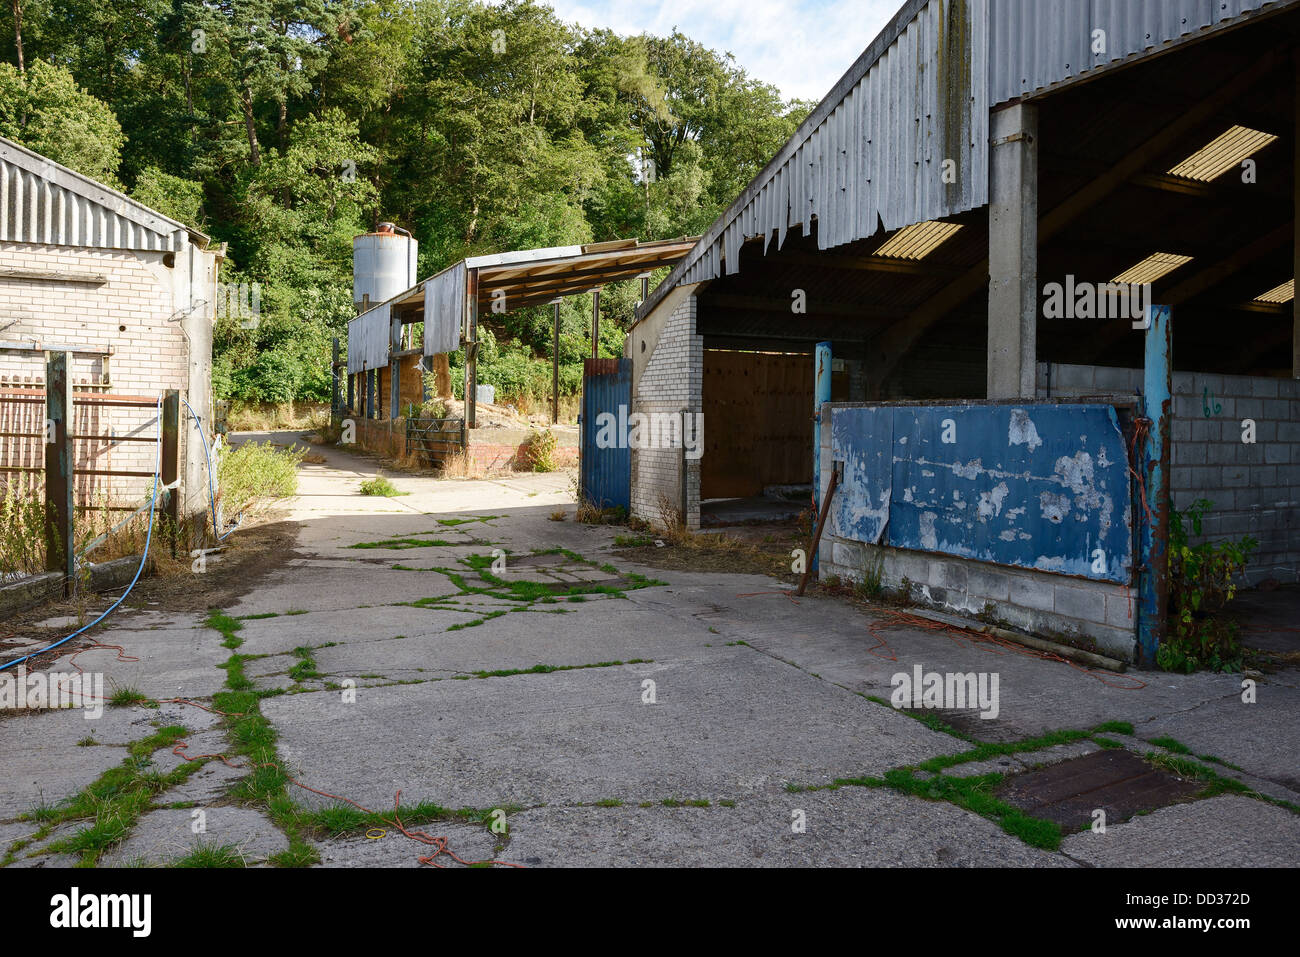 Abandoned and derelict farm buildings Cheshire UK - Stock Image